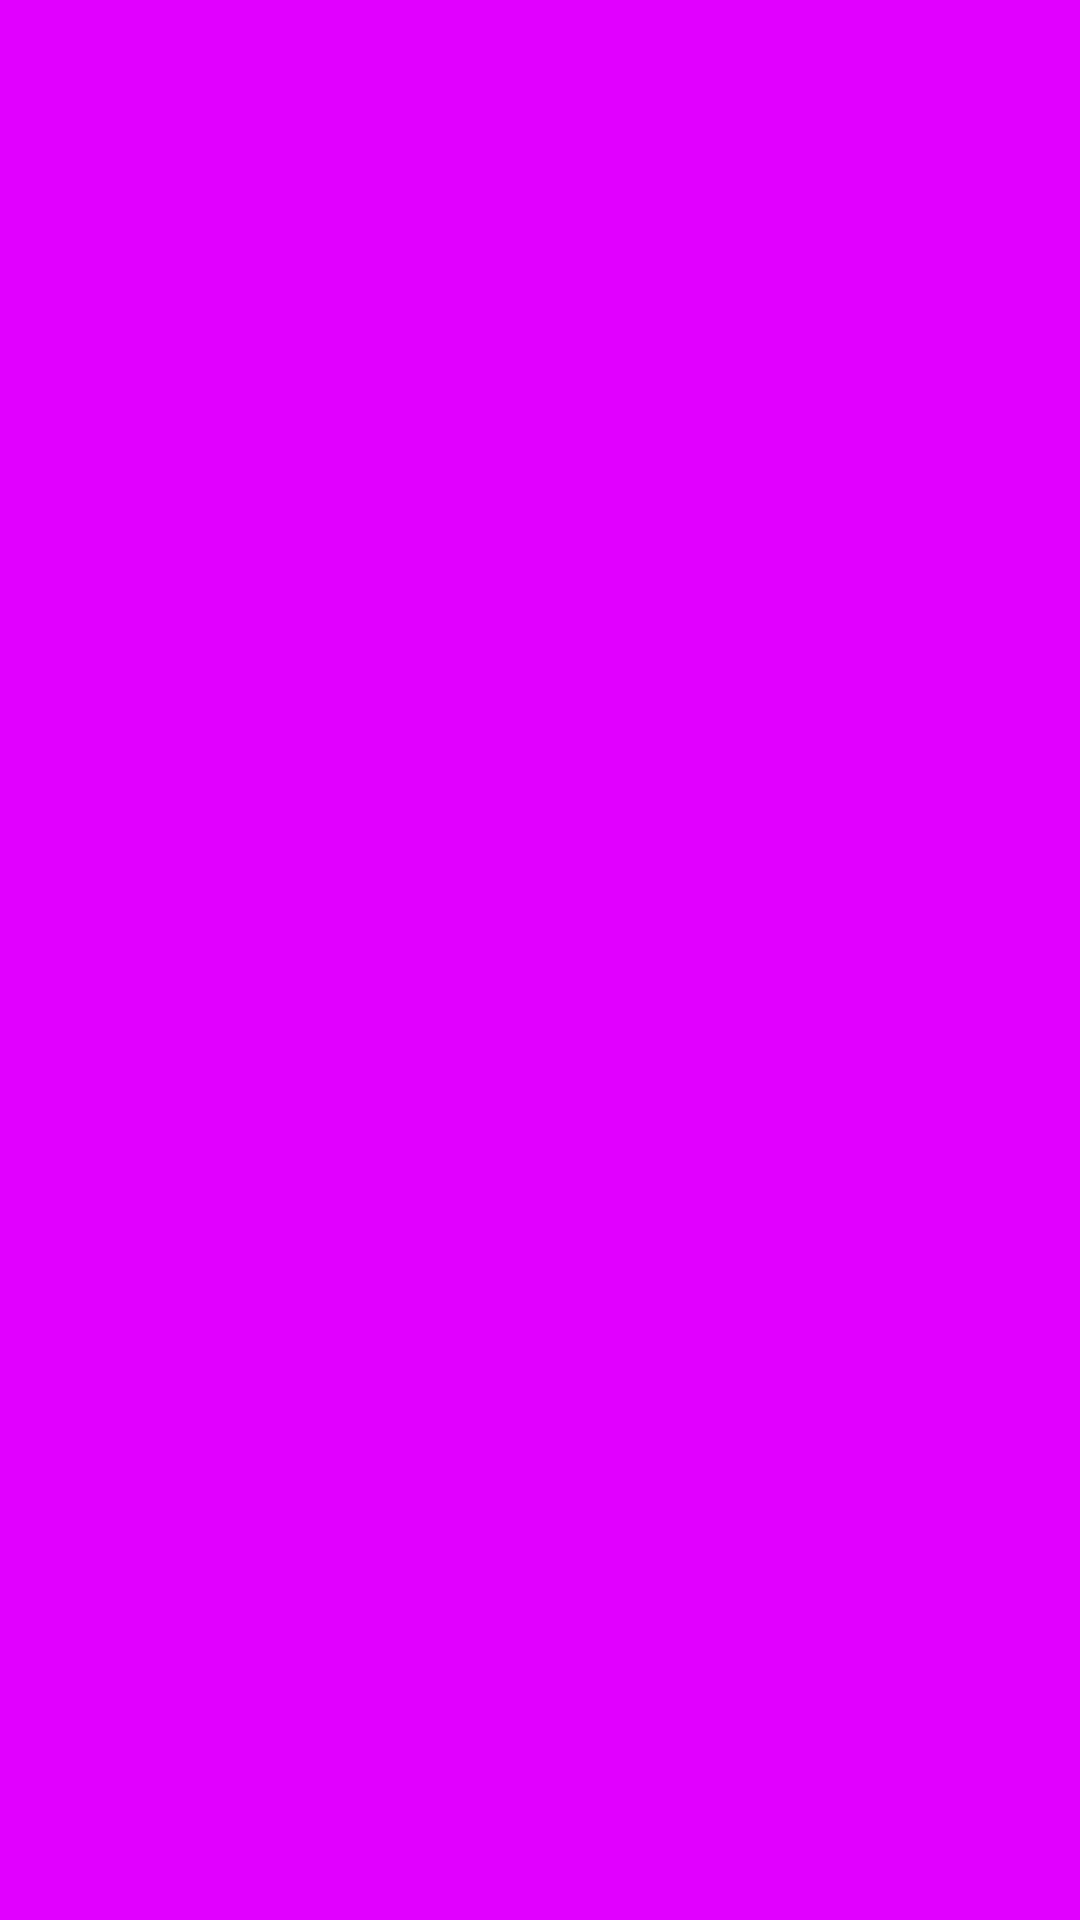 1080x1920 Psychedelic Purple Solid Color Background